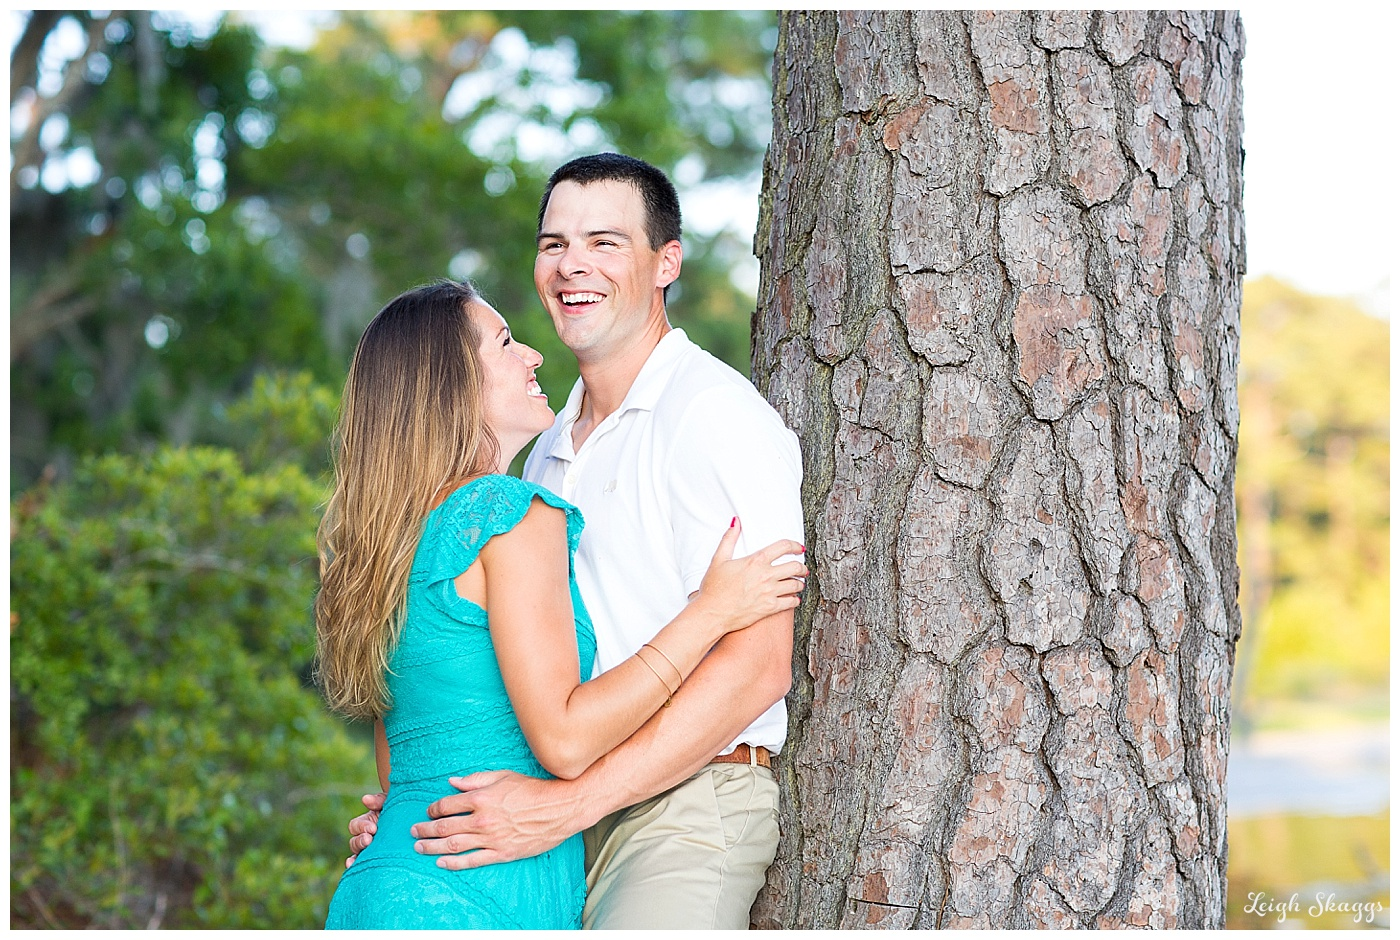 Tracey & Richard are Engaged Their First Landing Engagement session with Boxer Pups!